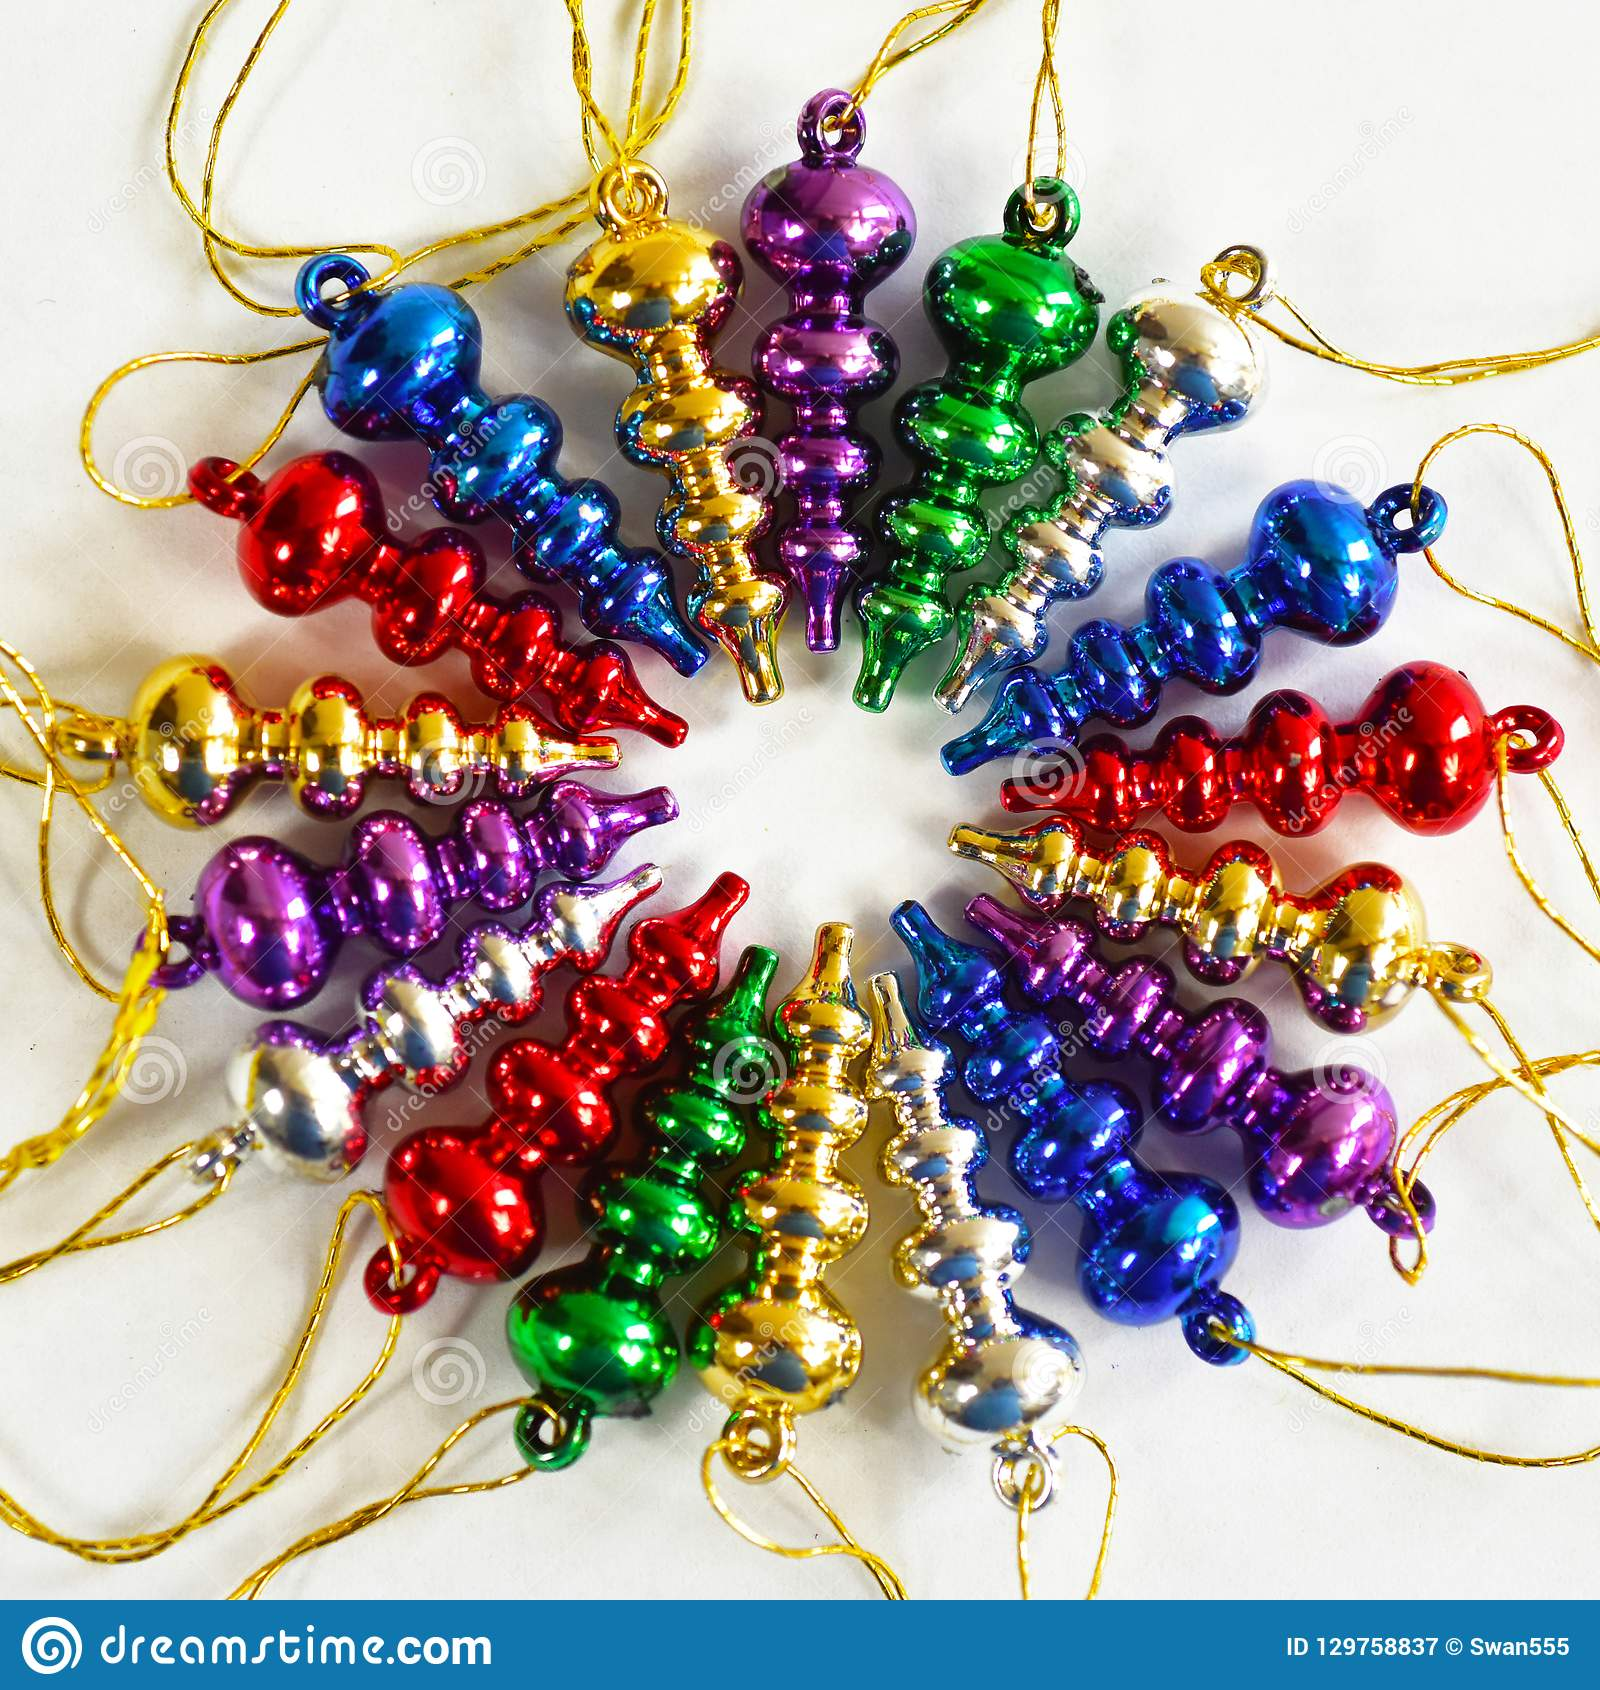 Vintage Glass Ornaments Stock Image Image Of Xmas Ornament 129758837